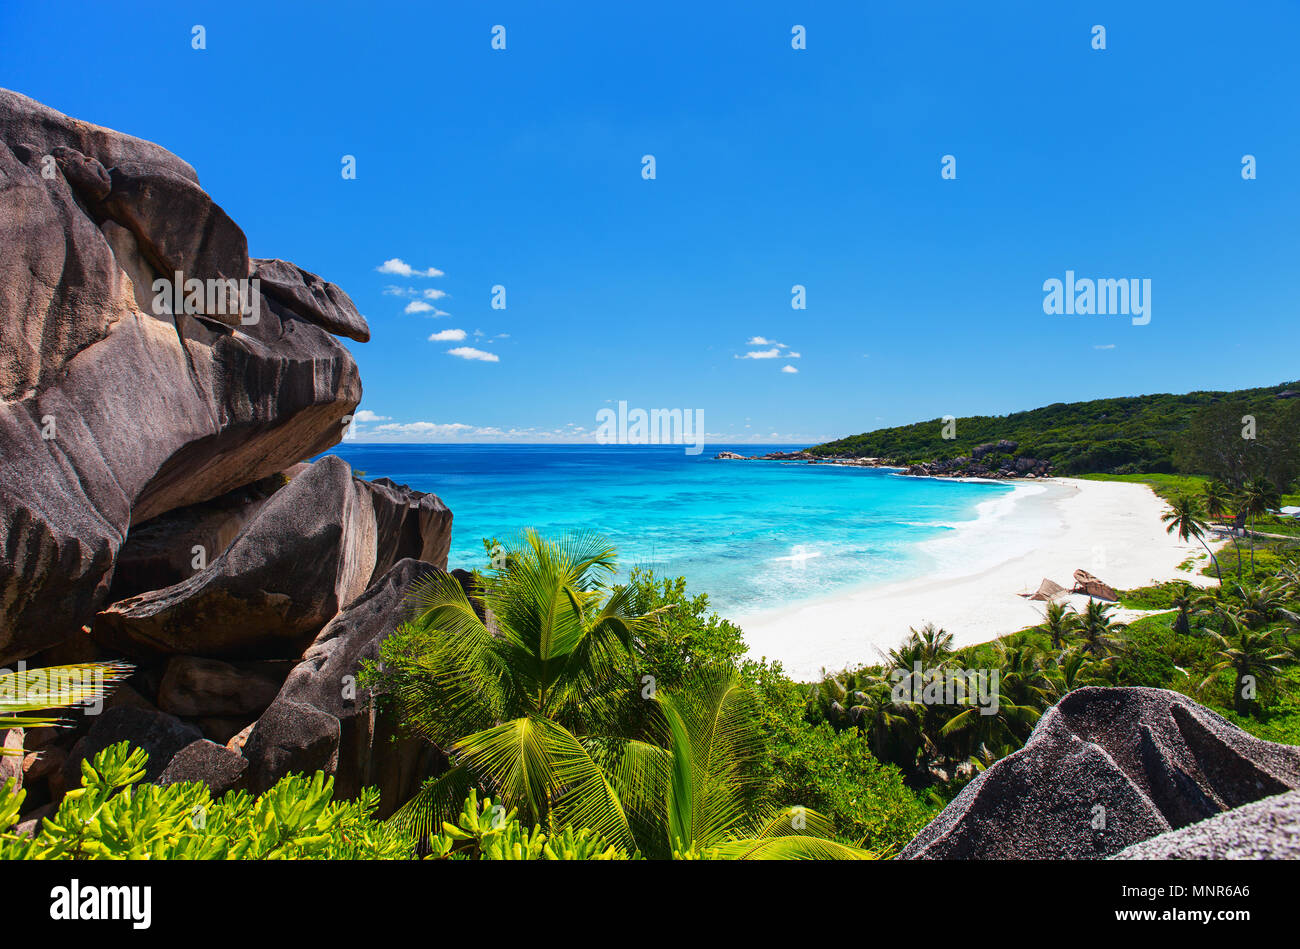 Aerial view of beautiful Grand Anse beach on La Digue island in Seychelles - Stock Image